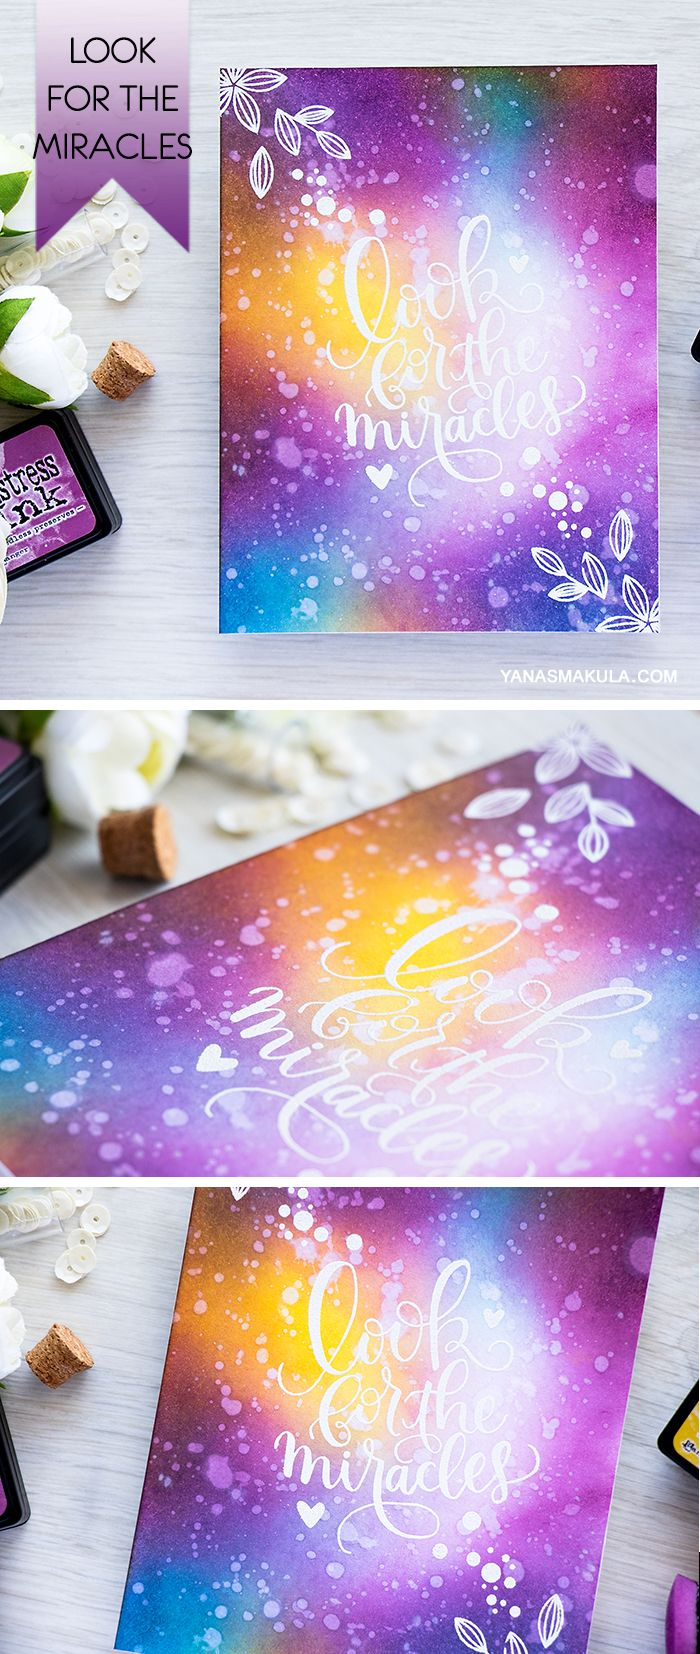 """Galaxy Ink Blended background and """"Look For The Miracles"""" sentiment from Simon Says Stamp go hand in hand together. For more details, visit http://www.yanasmakula.com/?p=54106"""